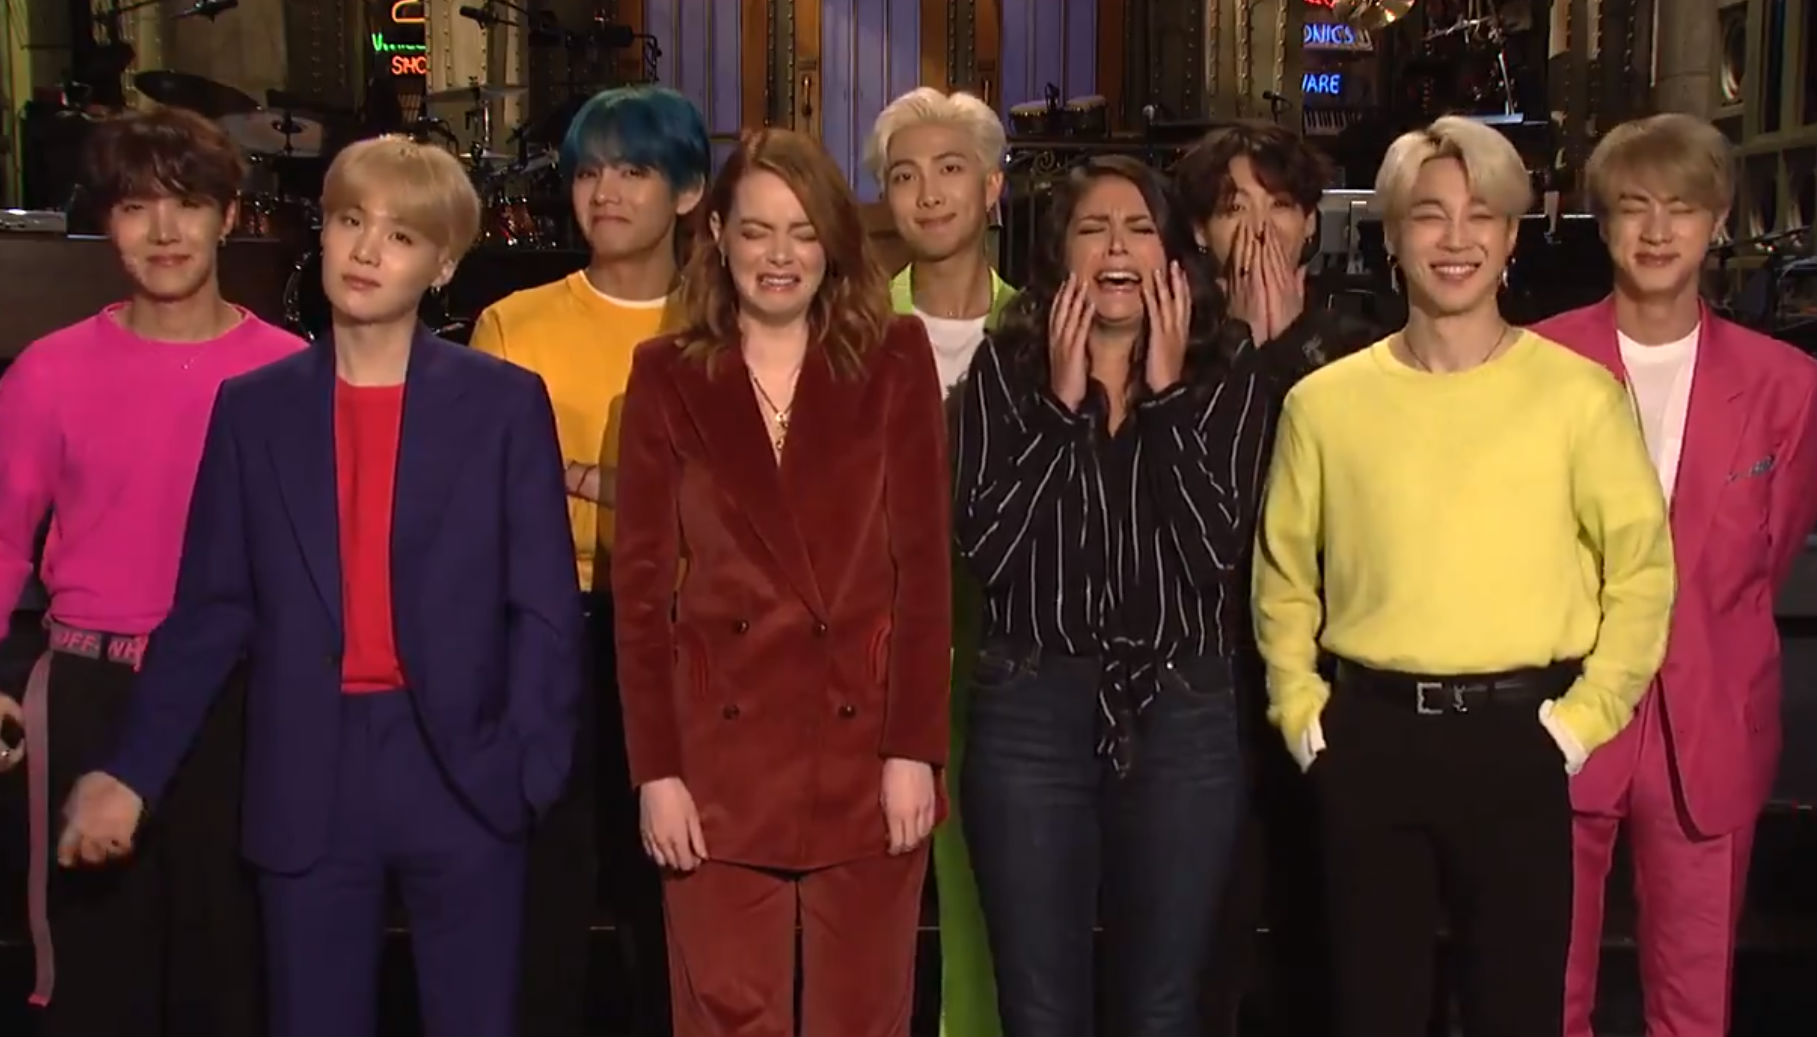 BTS hype up SNL appearance and ARMY fans can't get enough of their facial expressions